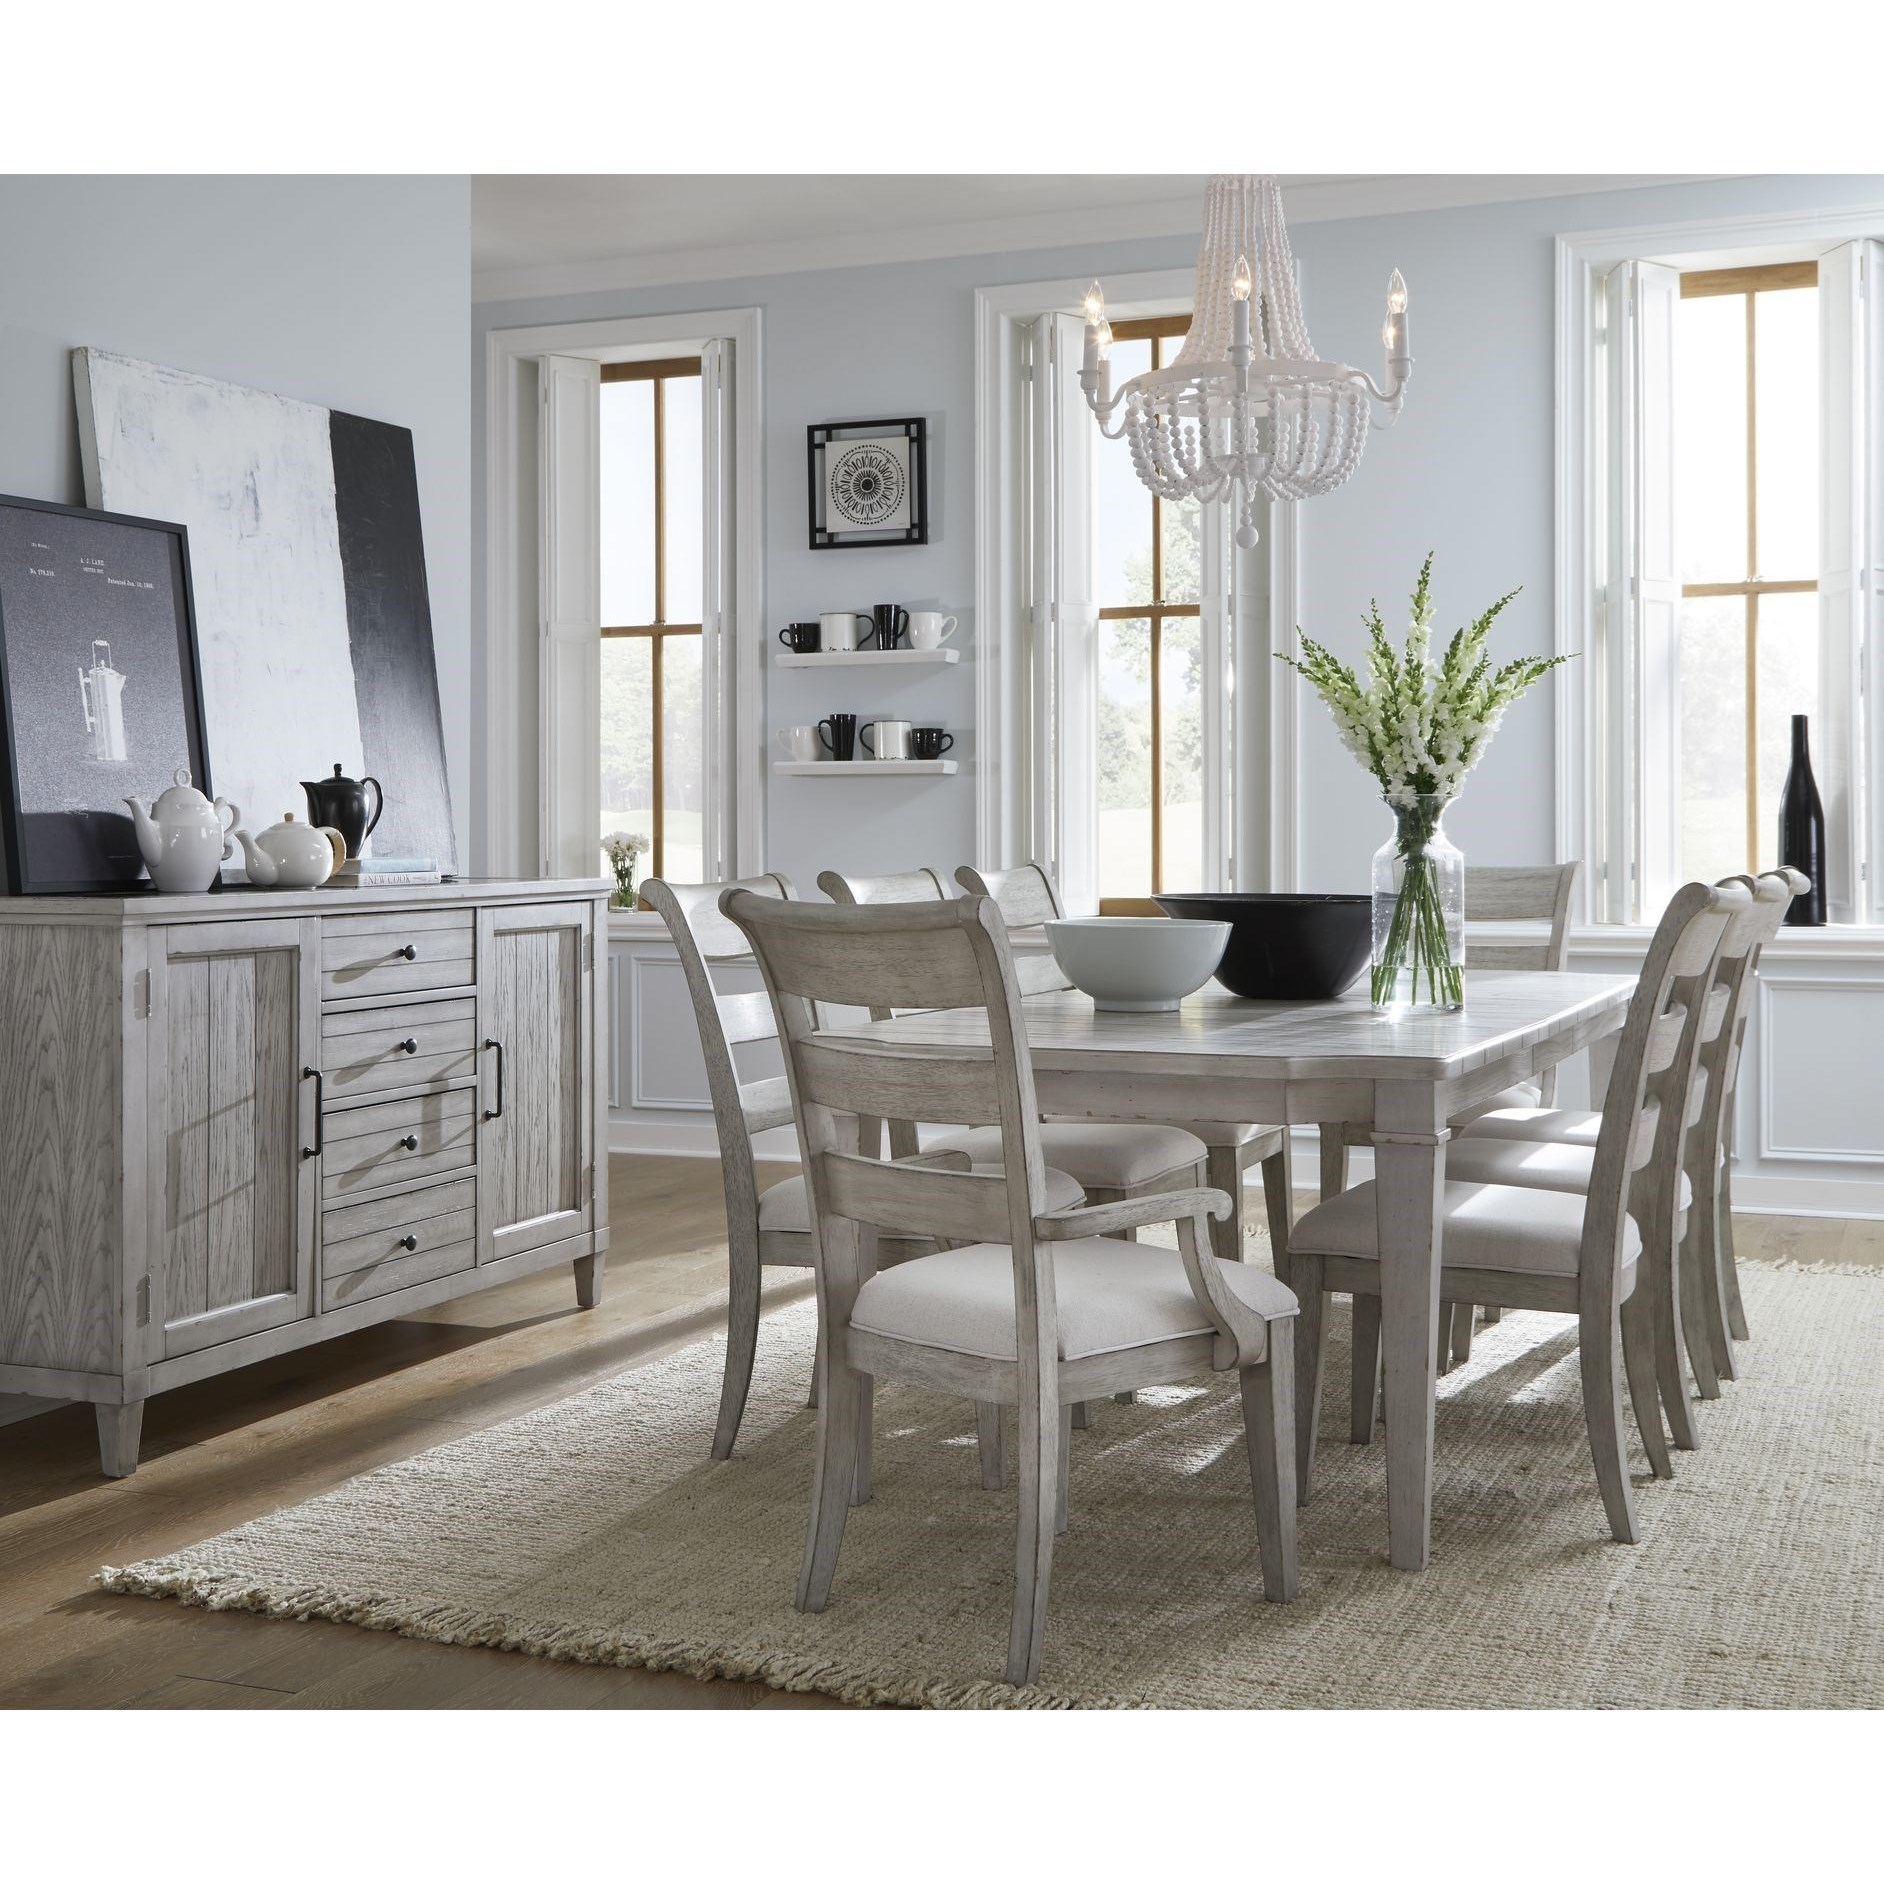 Belhaven Formal Dining Room Group by Legacy Classic at EFO Furniture Outlet